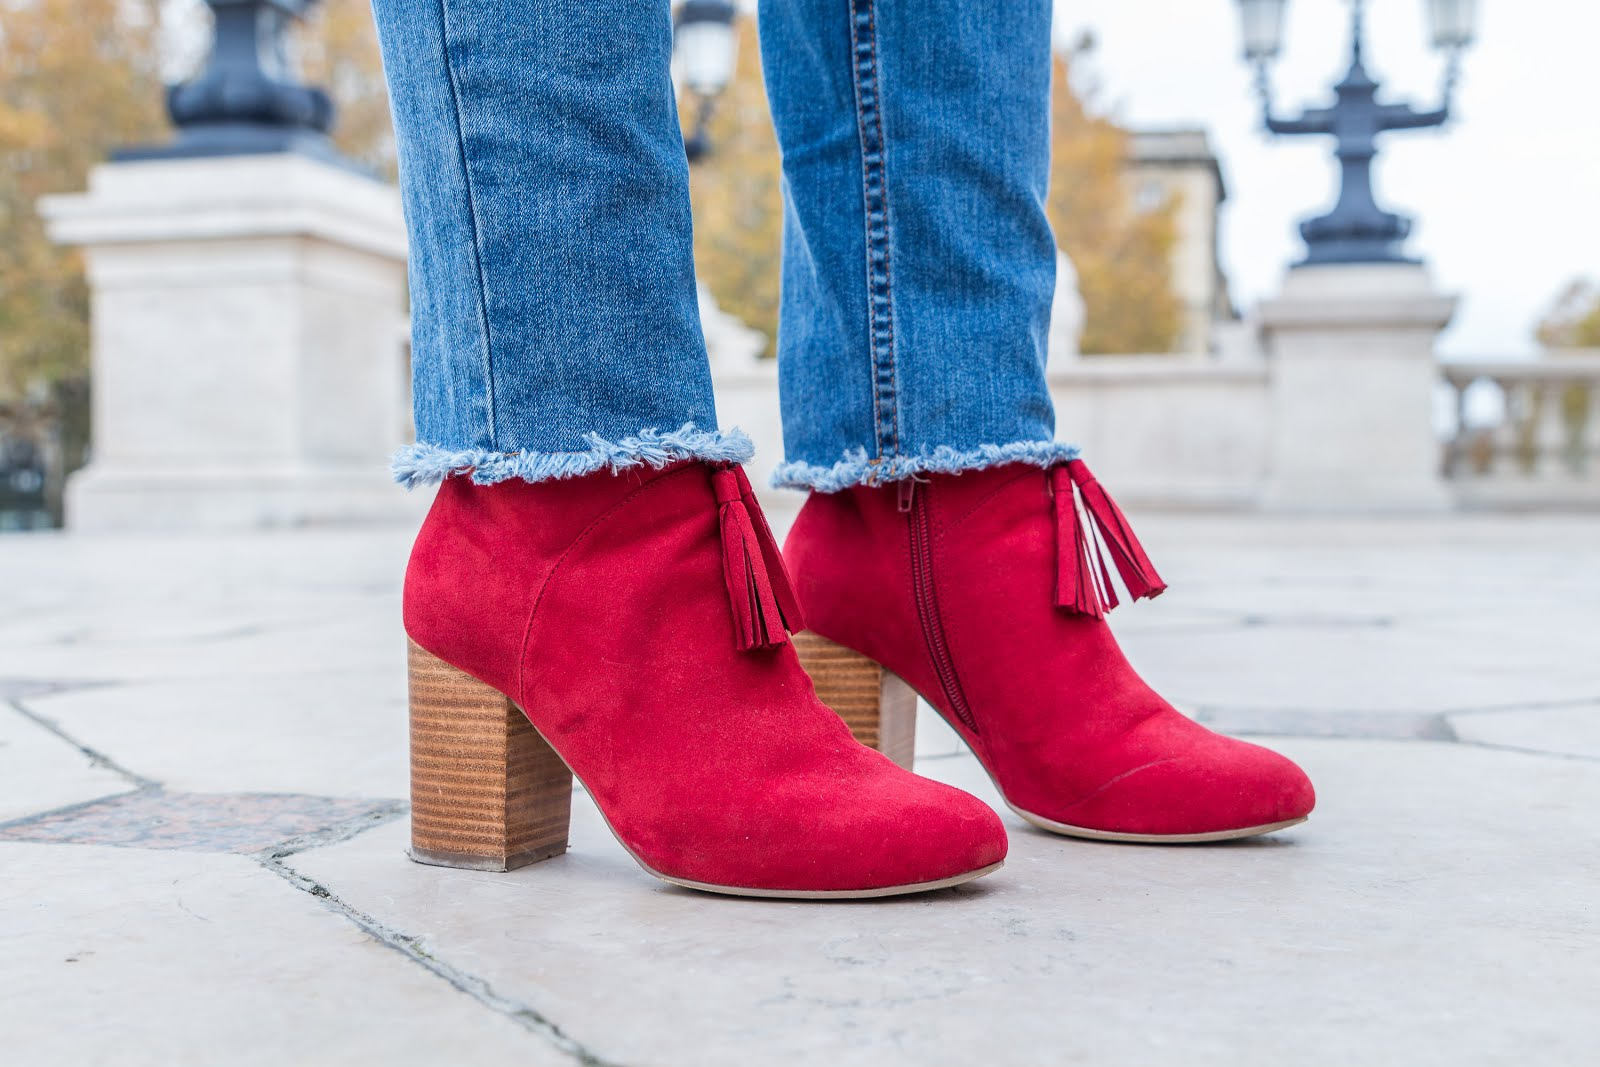 Bottines rouges à talons